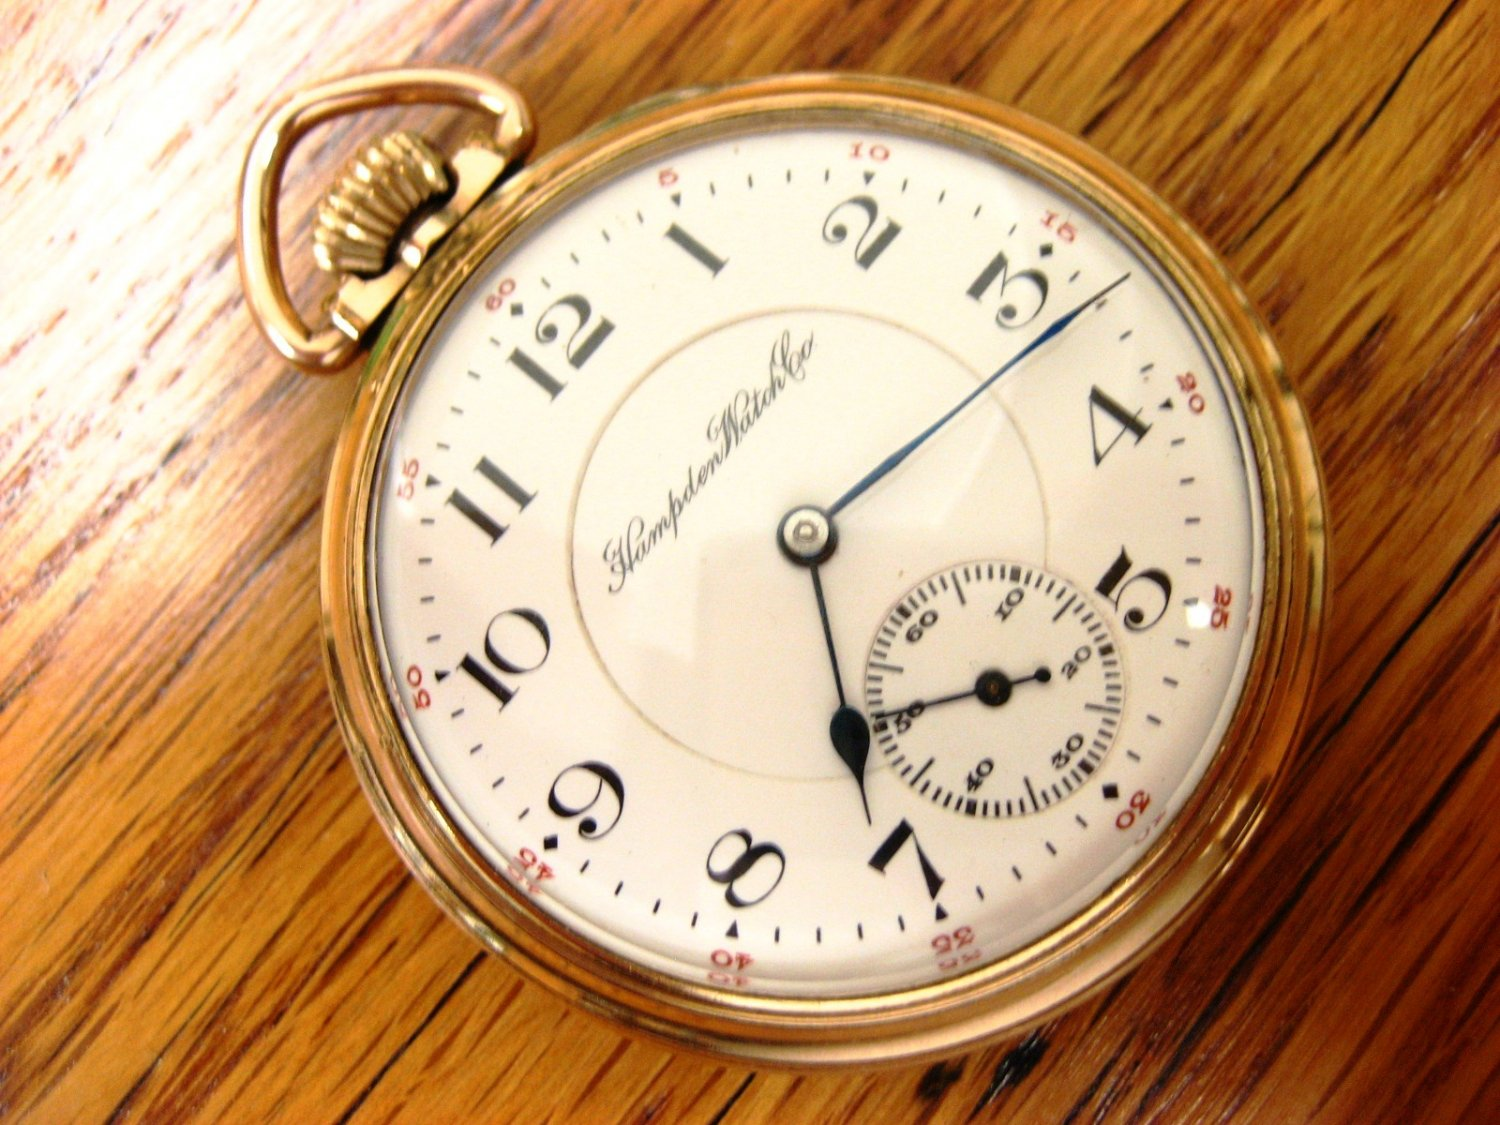 Dating a hampden pocket watch